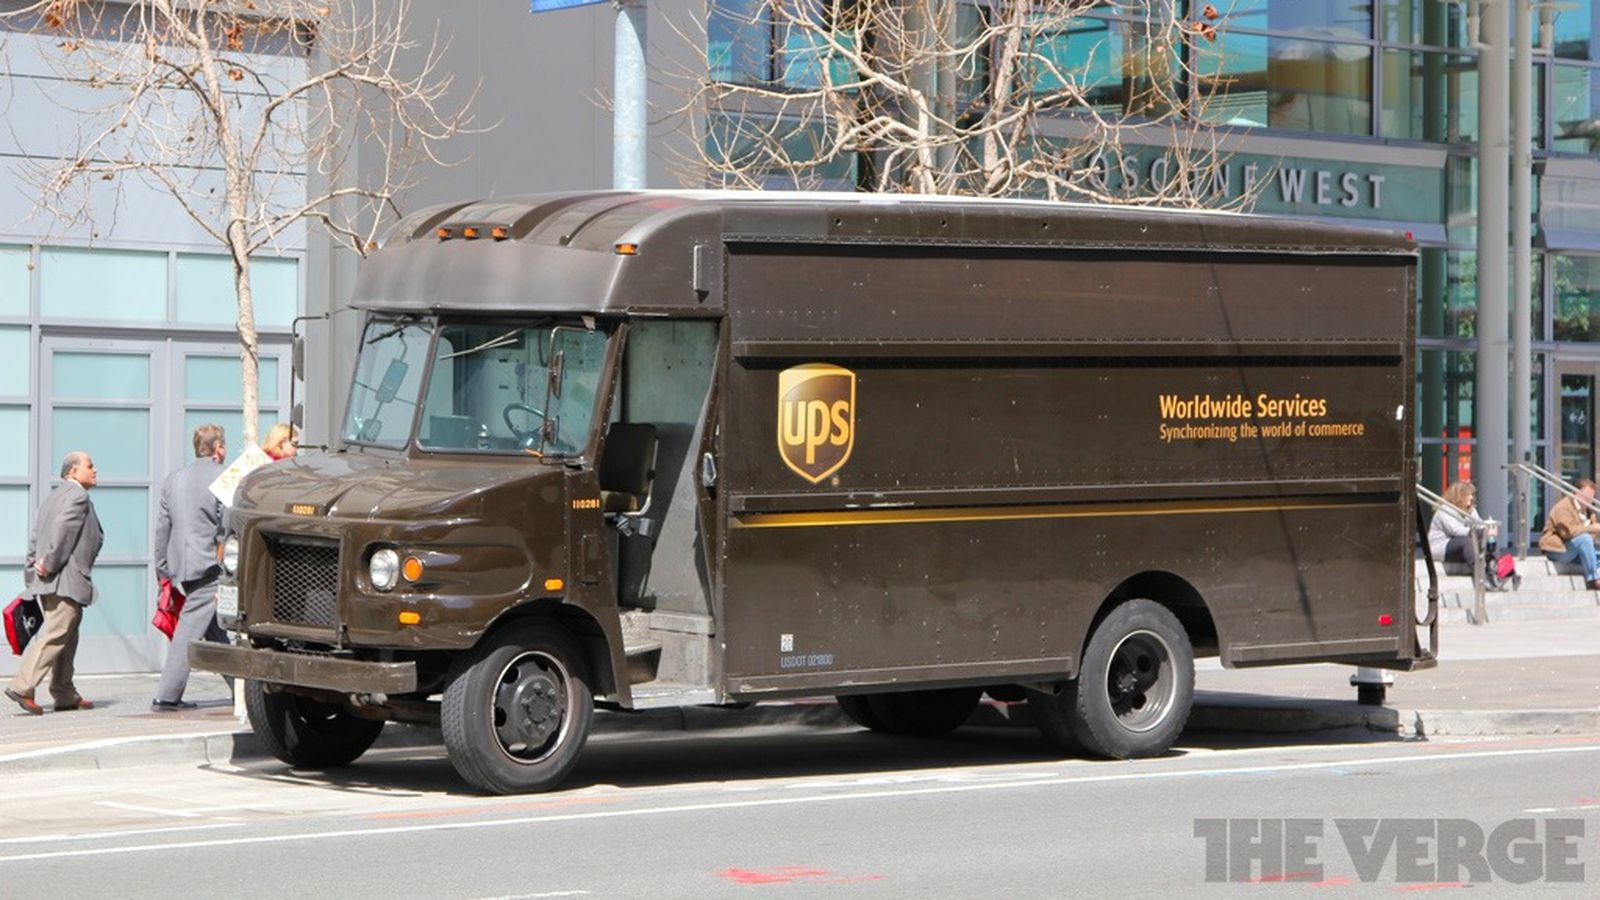 ups now lets you track packages for real on an actual map the verge. Black Bedroom Furniture Sets. Home Design Ideas